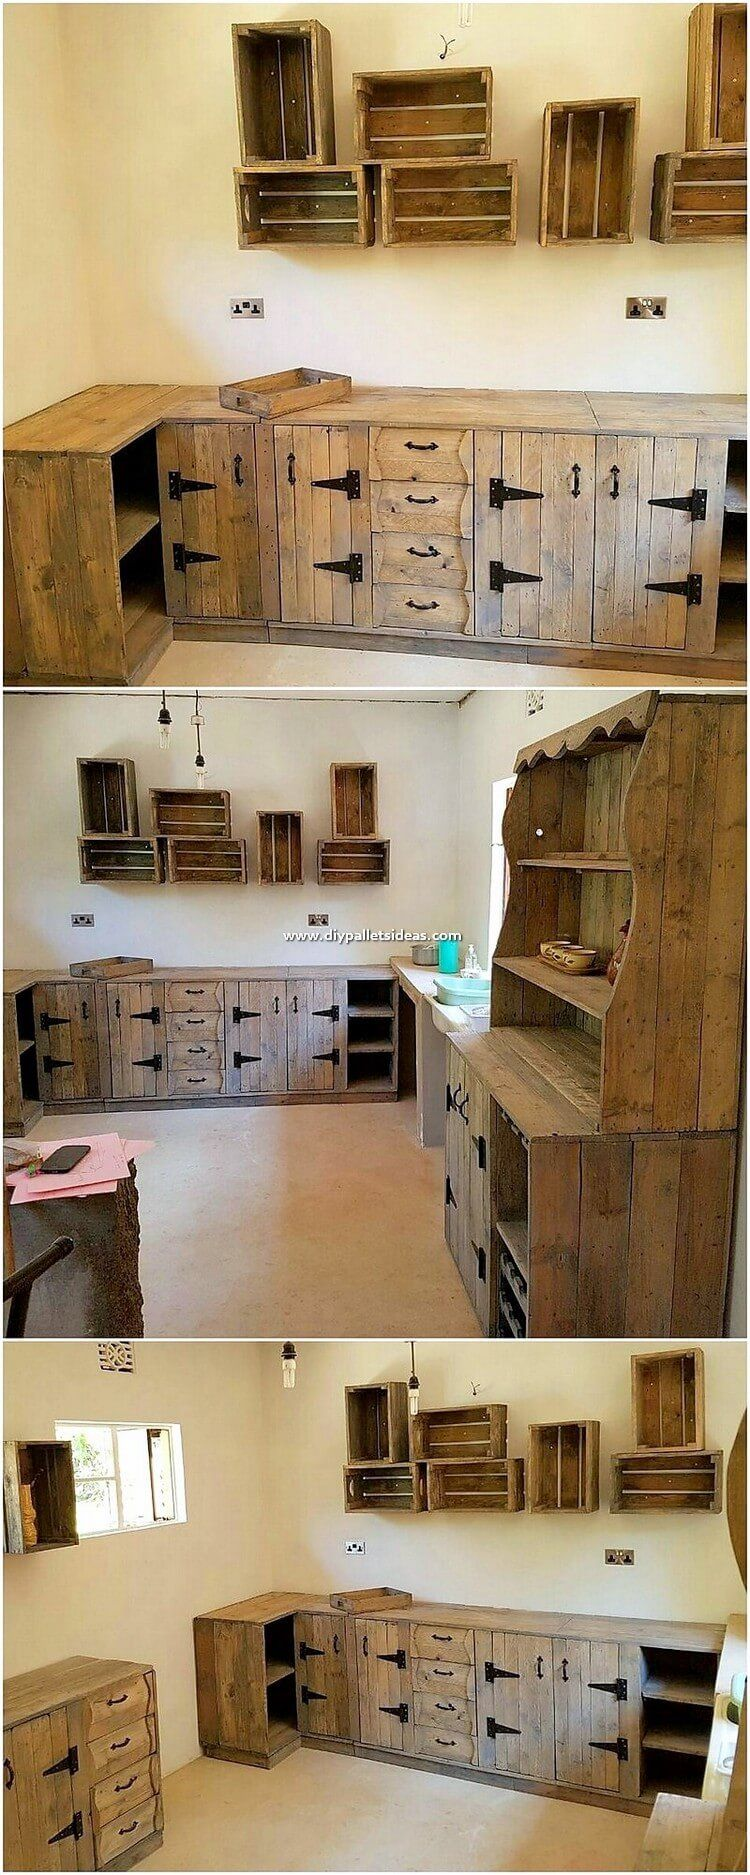 If You Do Want To Add Creativity In Designing The Wood Pallet Kitchen Cabinet Creation By Your Own Th Pallet Kitchen Cabinets Wood Pallets Diy Pallet Projects